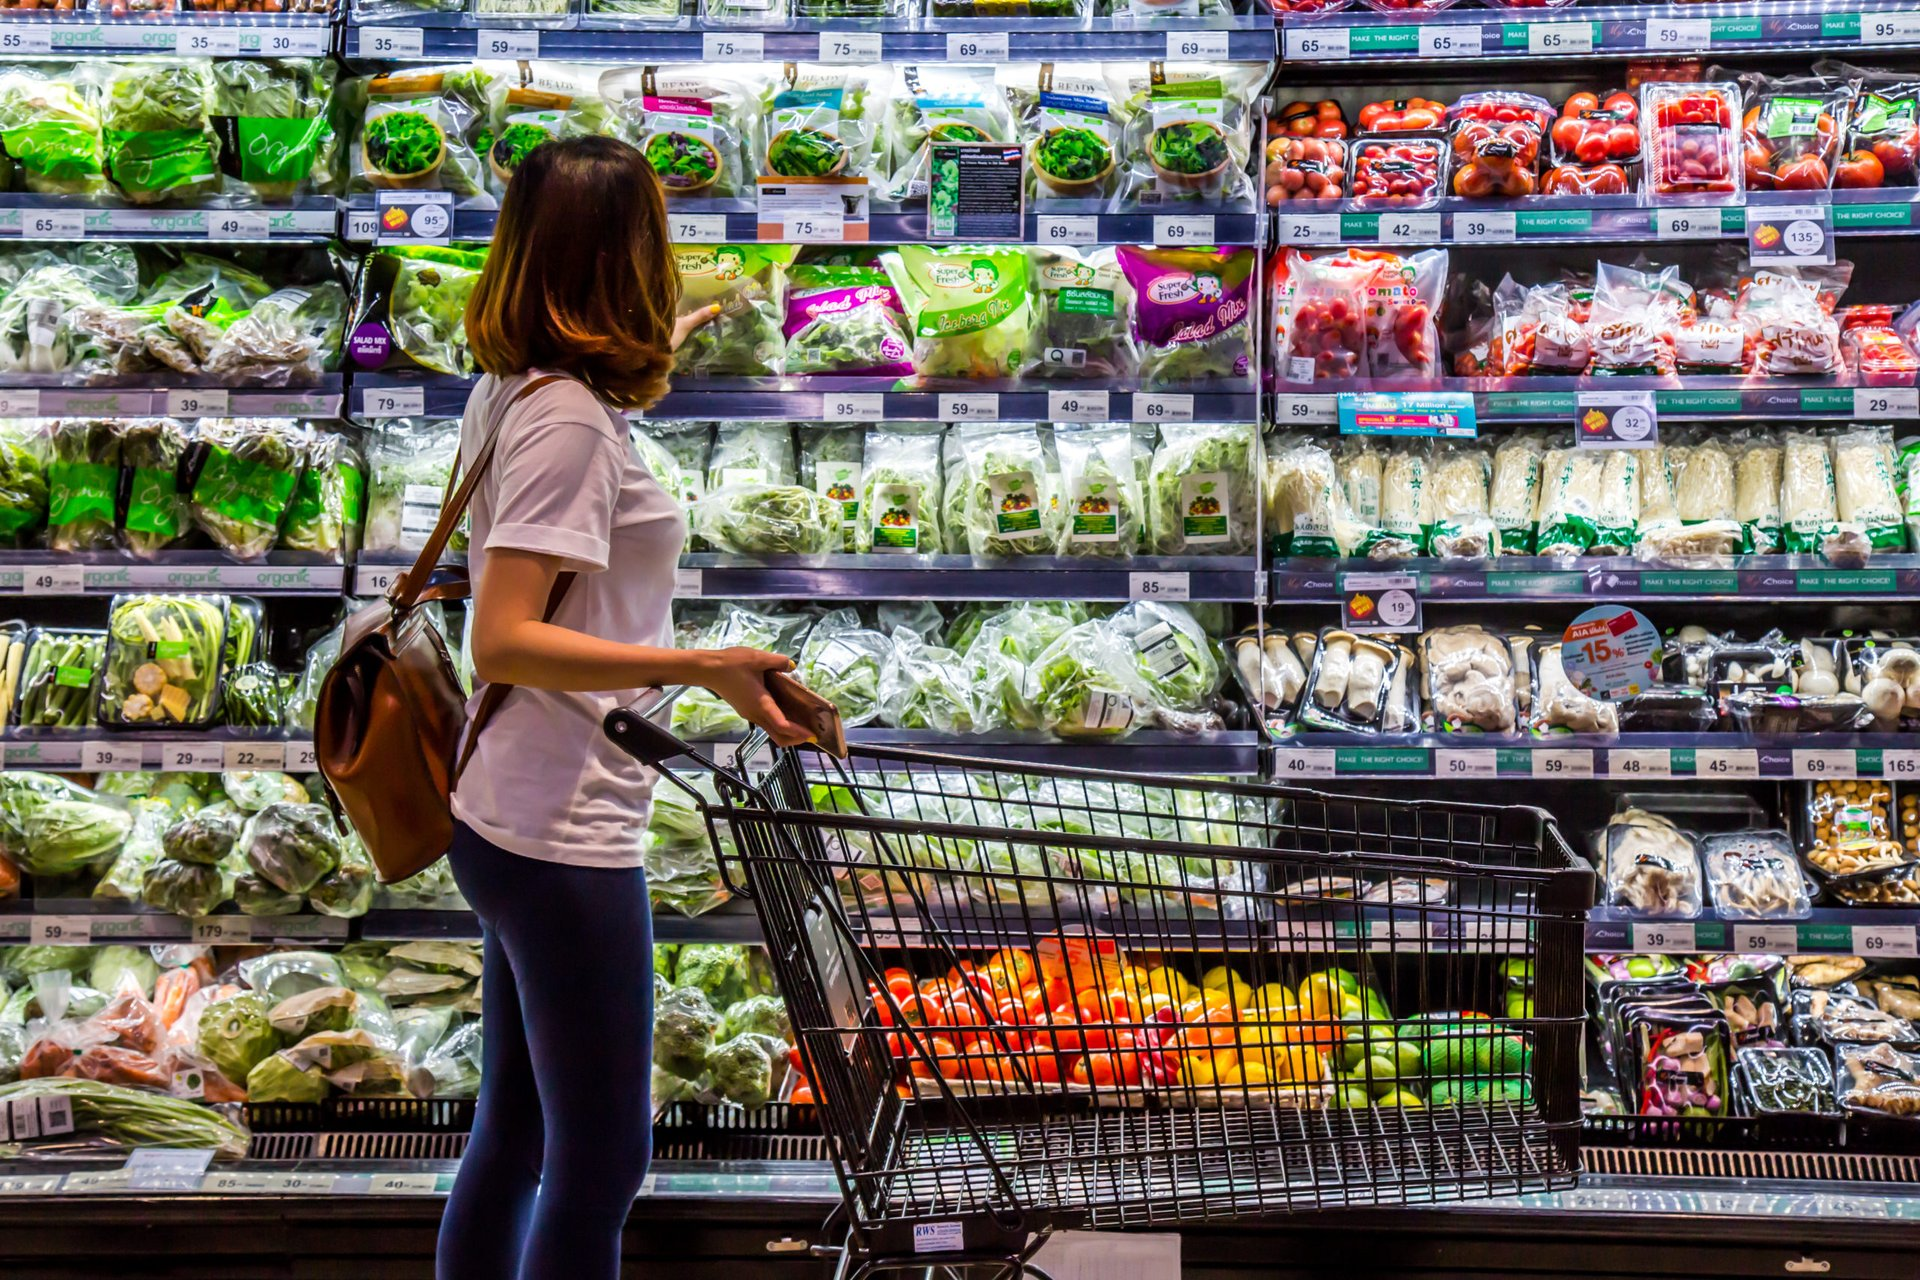 Woman shopping for produce wants to save with grocery cash back rewards